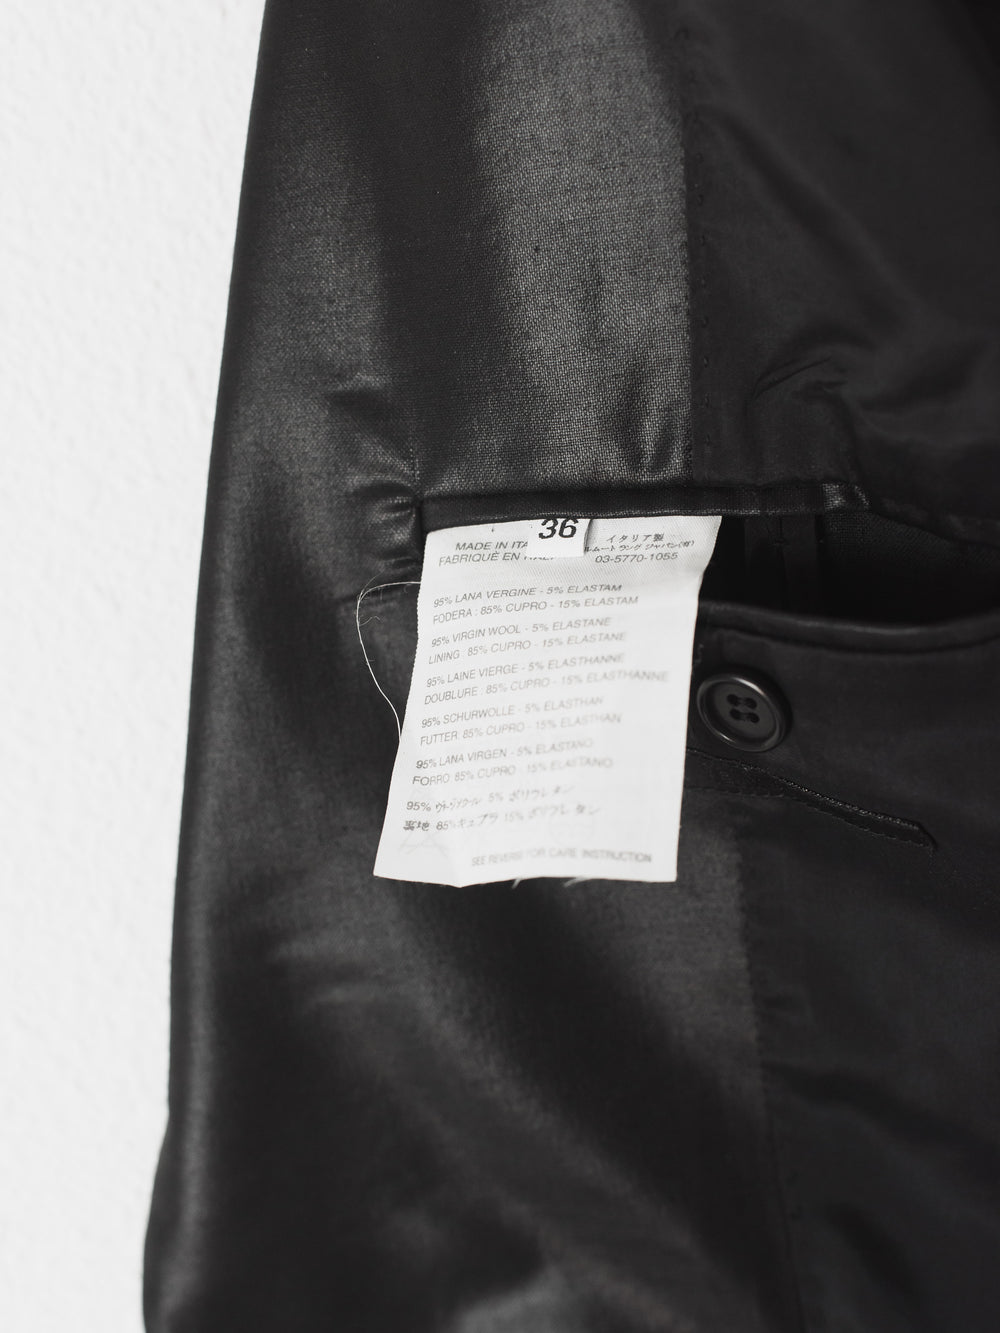 Helmut Lang SS05 Resin Coated Wool Suit & Skirt